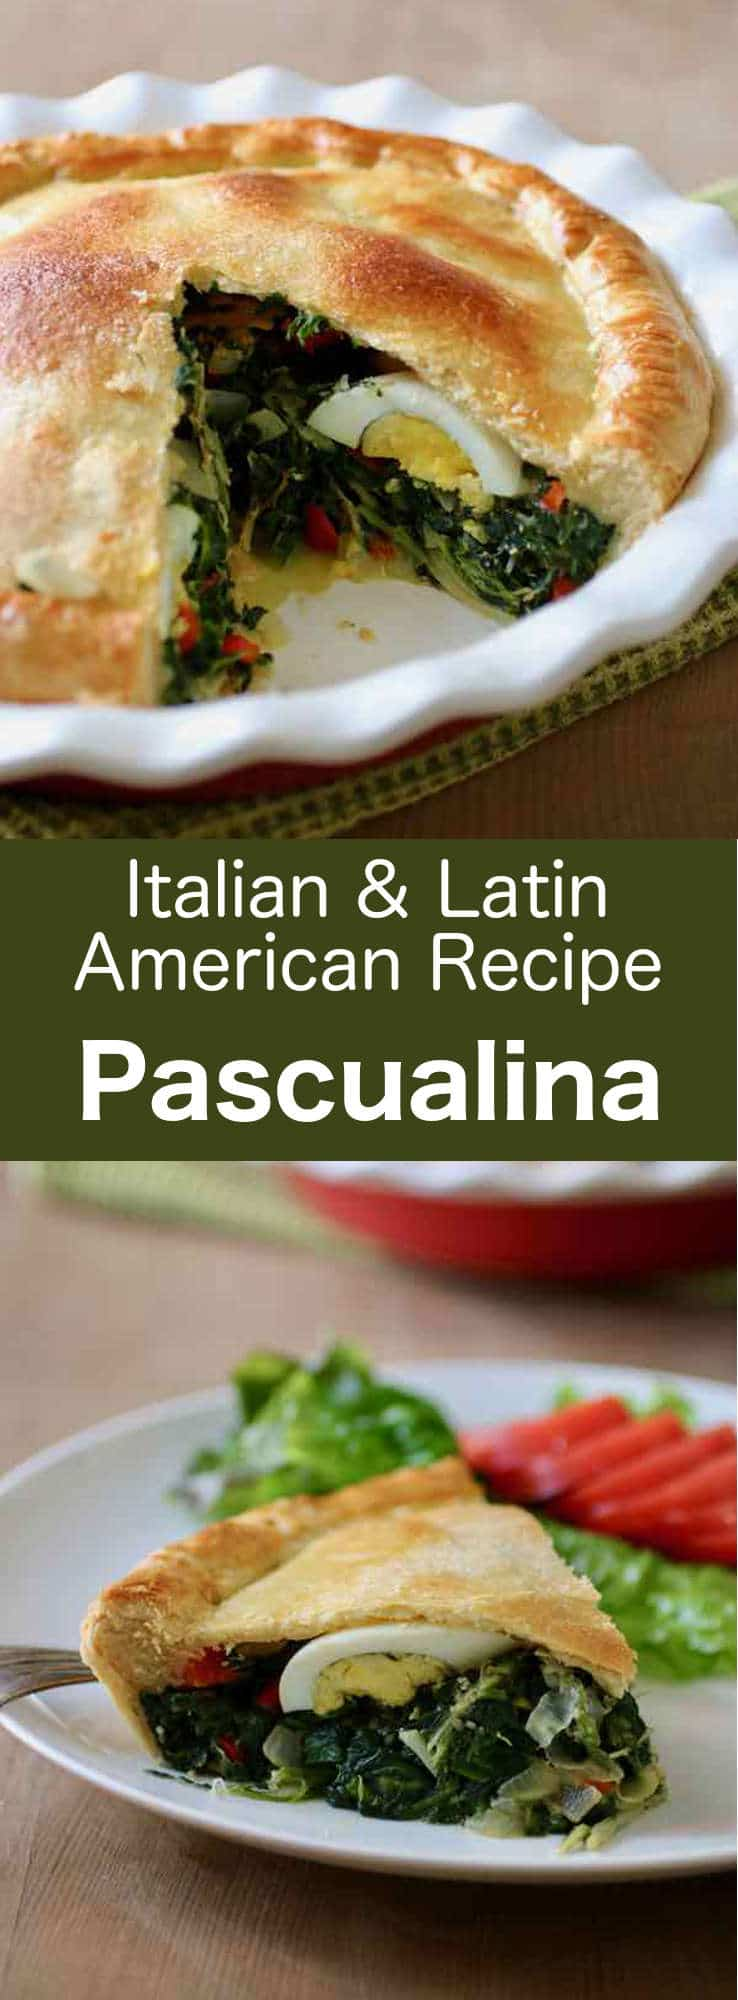 Pascualina is a traditional dish from Uruguay and Argentina composed of a spinach, chard and hard-boiled eggs-filled pastry crust that is typically eaten during Lent. #Uruguay #Italy #Easter #Uruguayan #Italian #UruguayanRecipe #ItalianRecipe #EasterRecipe #UruguayCuisine #ItalianCuisine #Argentina #ArgentinaCuisine #ArgentinaRecipe #Vegetarian #VegetarianCuisine #VegetarianRecipe #WorldCuisine #196flavors